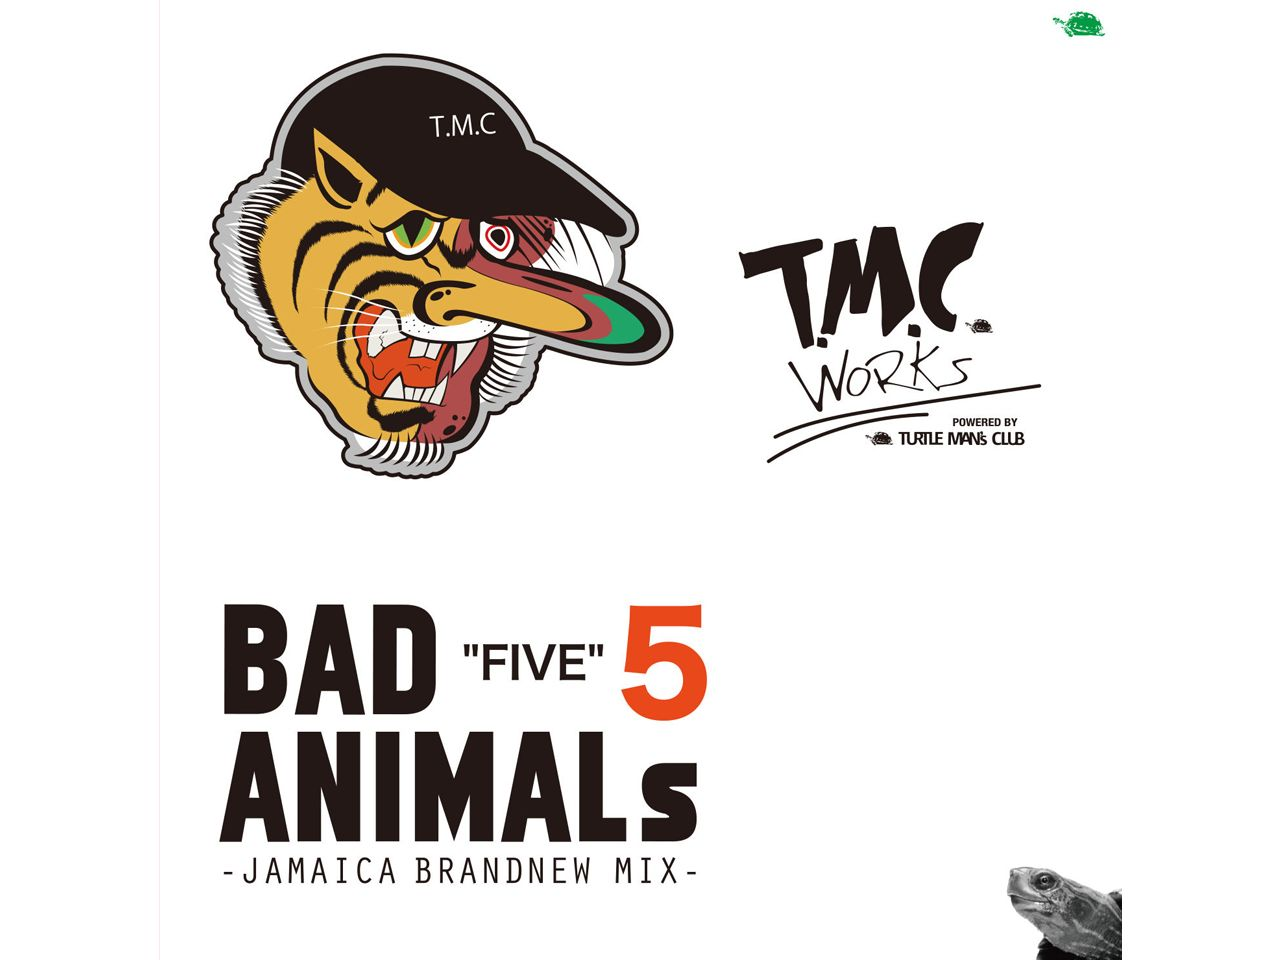 BAD ANIMALS 5 - T.M.C.WORKS -